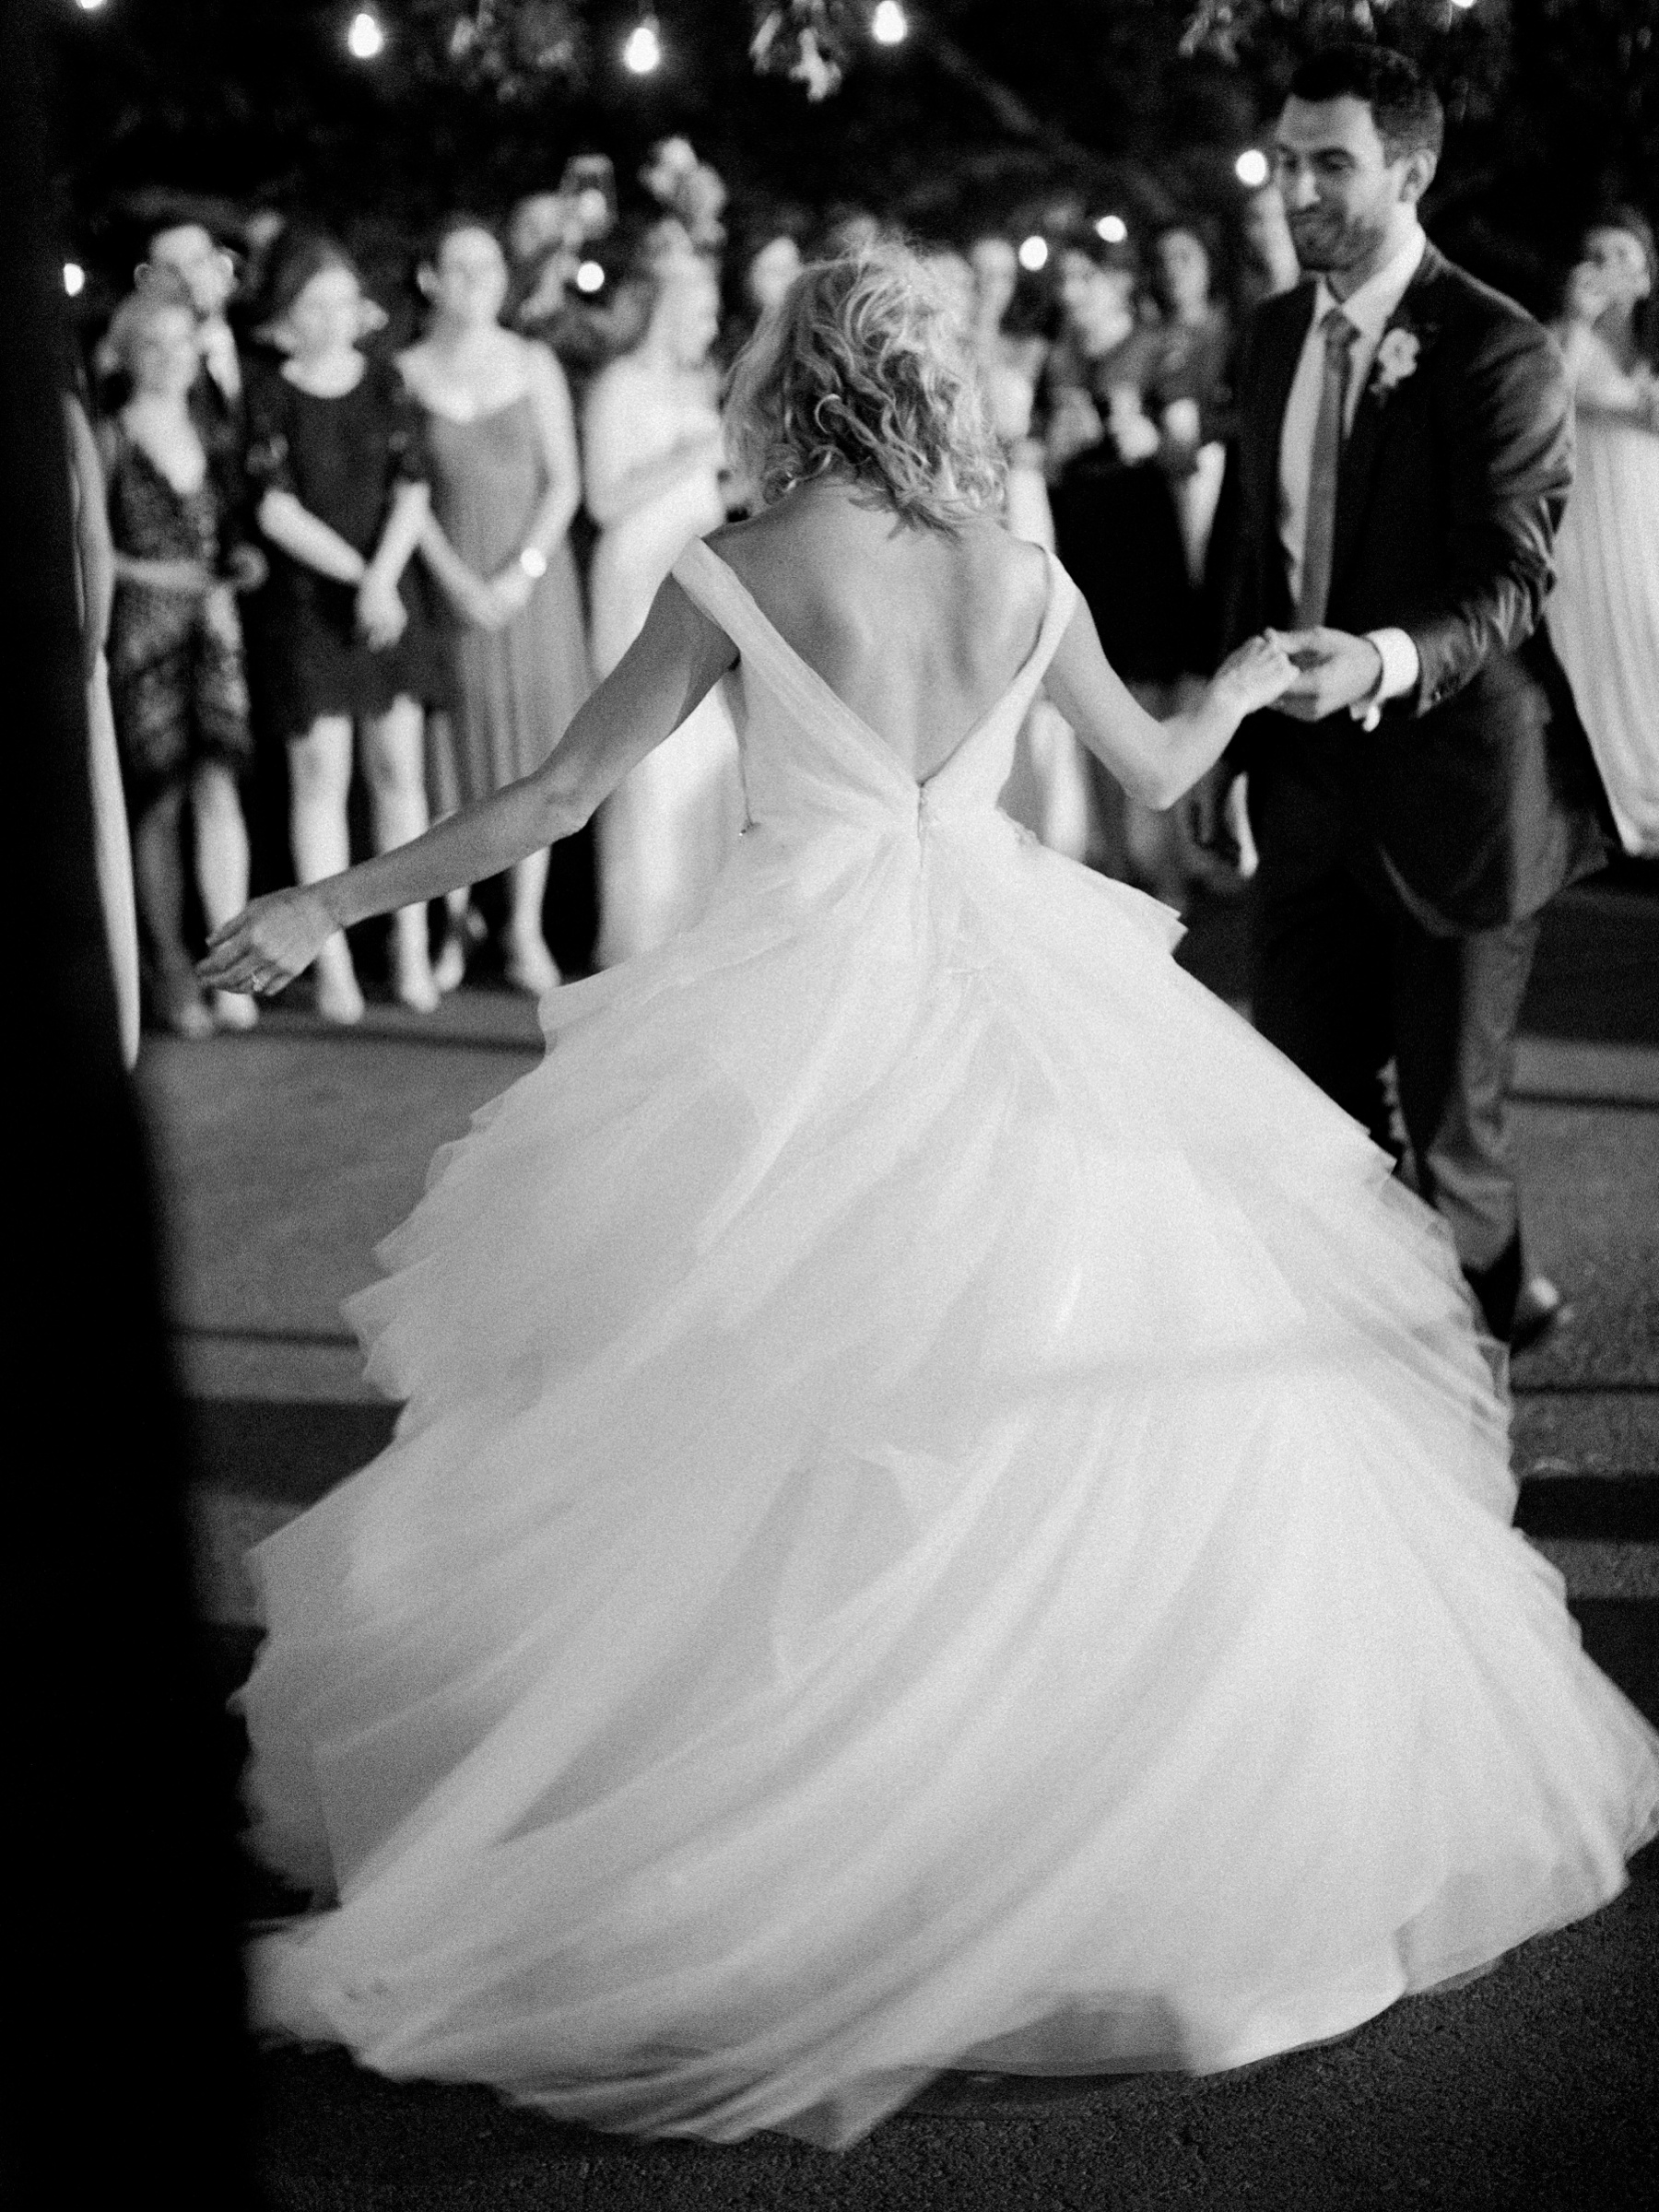 CMT Music City Jessica Mack and Andreas Plackis Wedding_1540.jpg